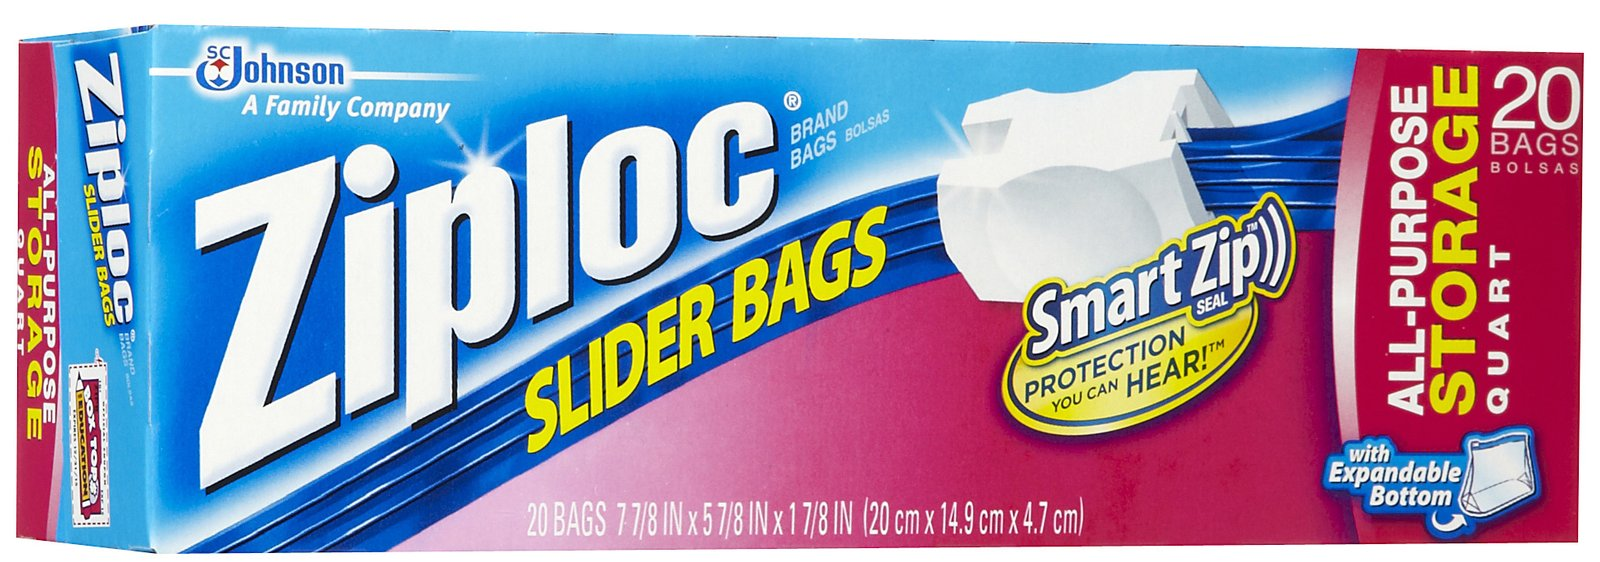 Walgreens: Ziploc Storage Bags only $0.25!